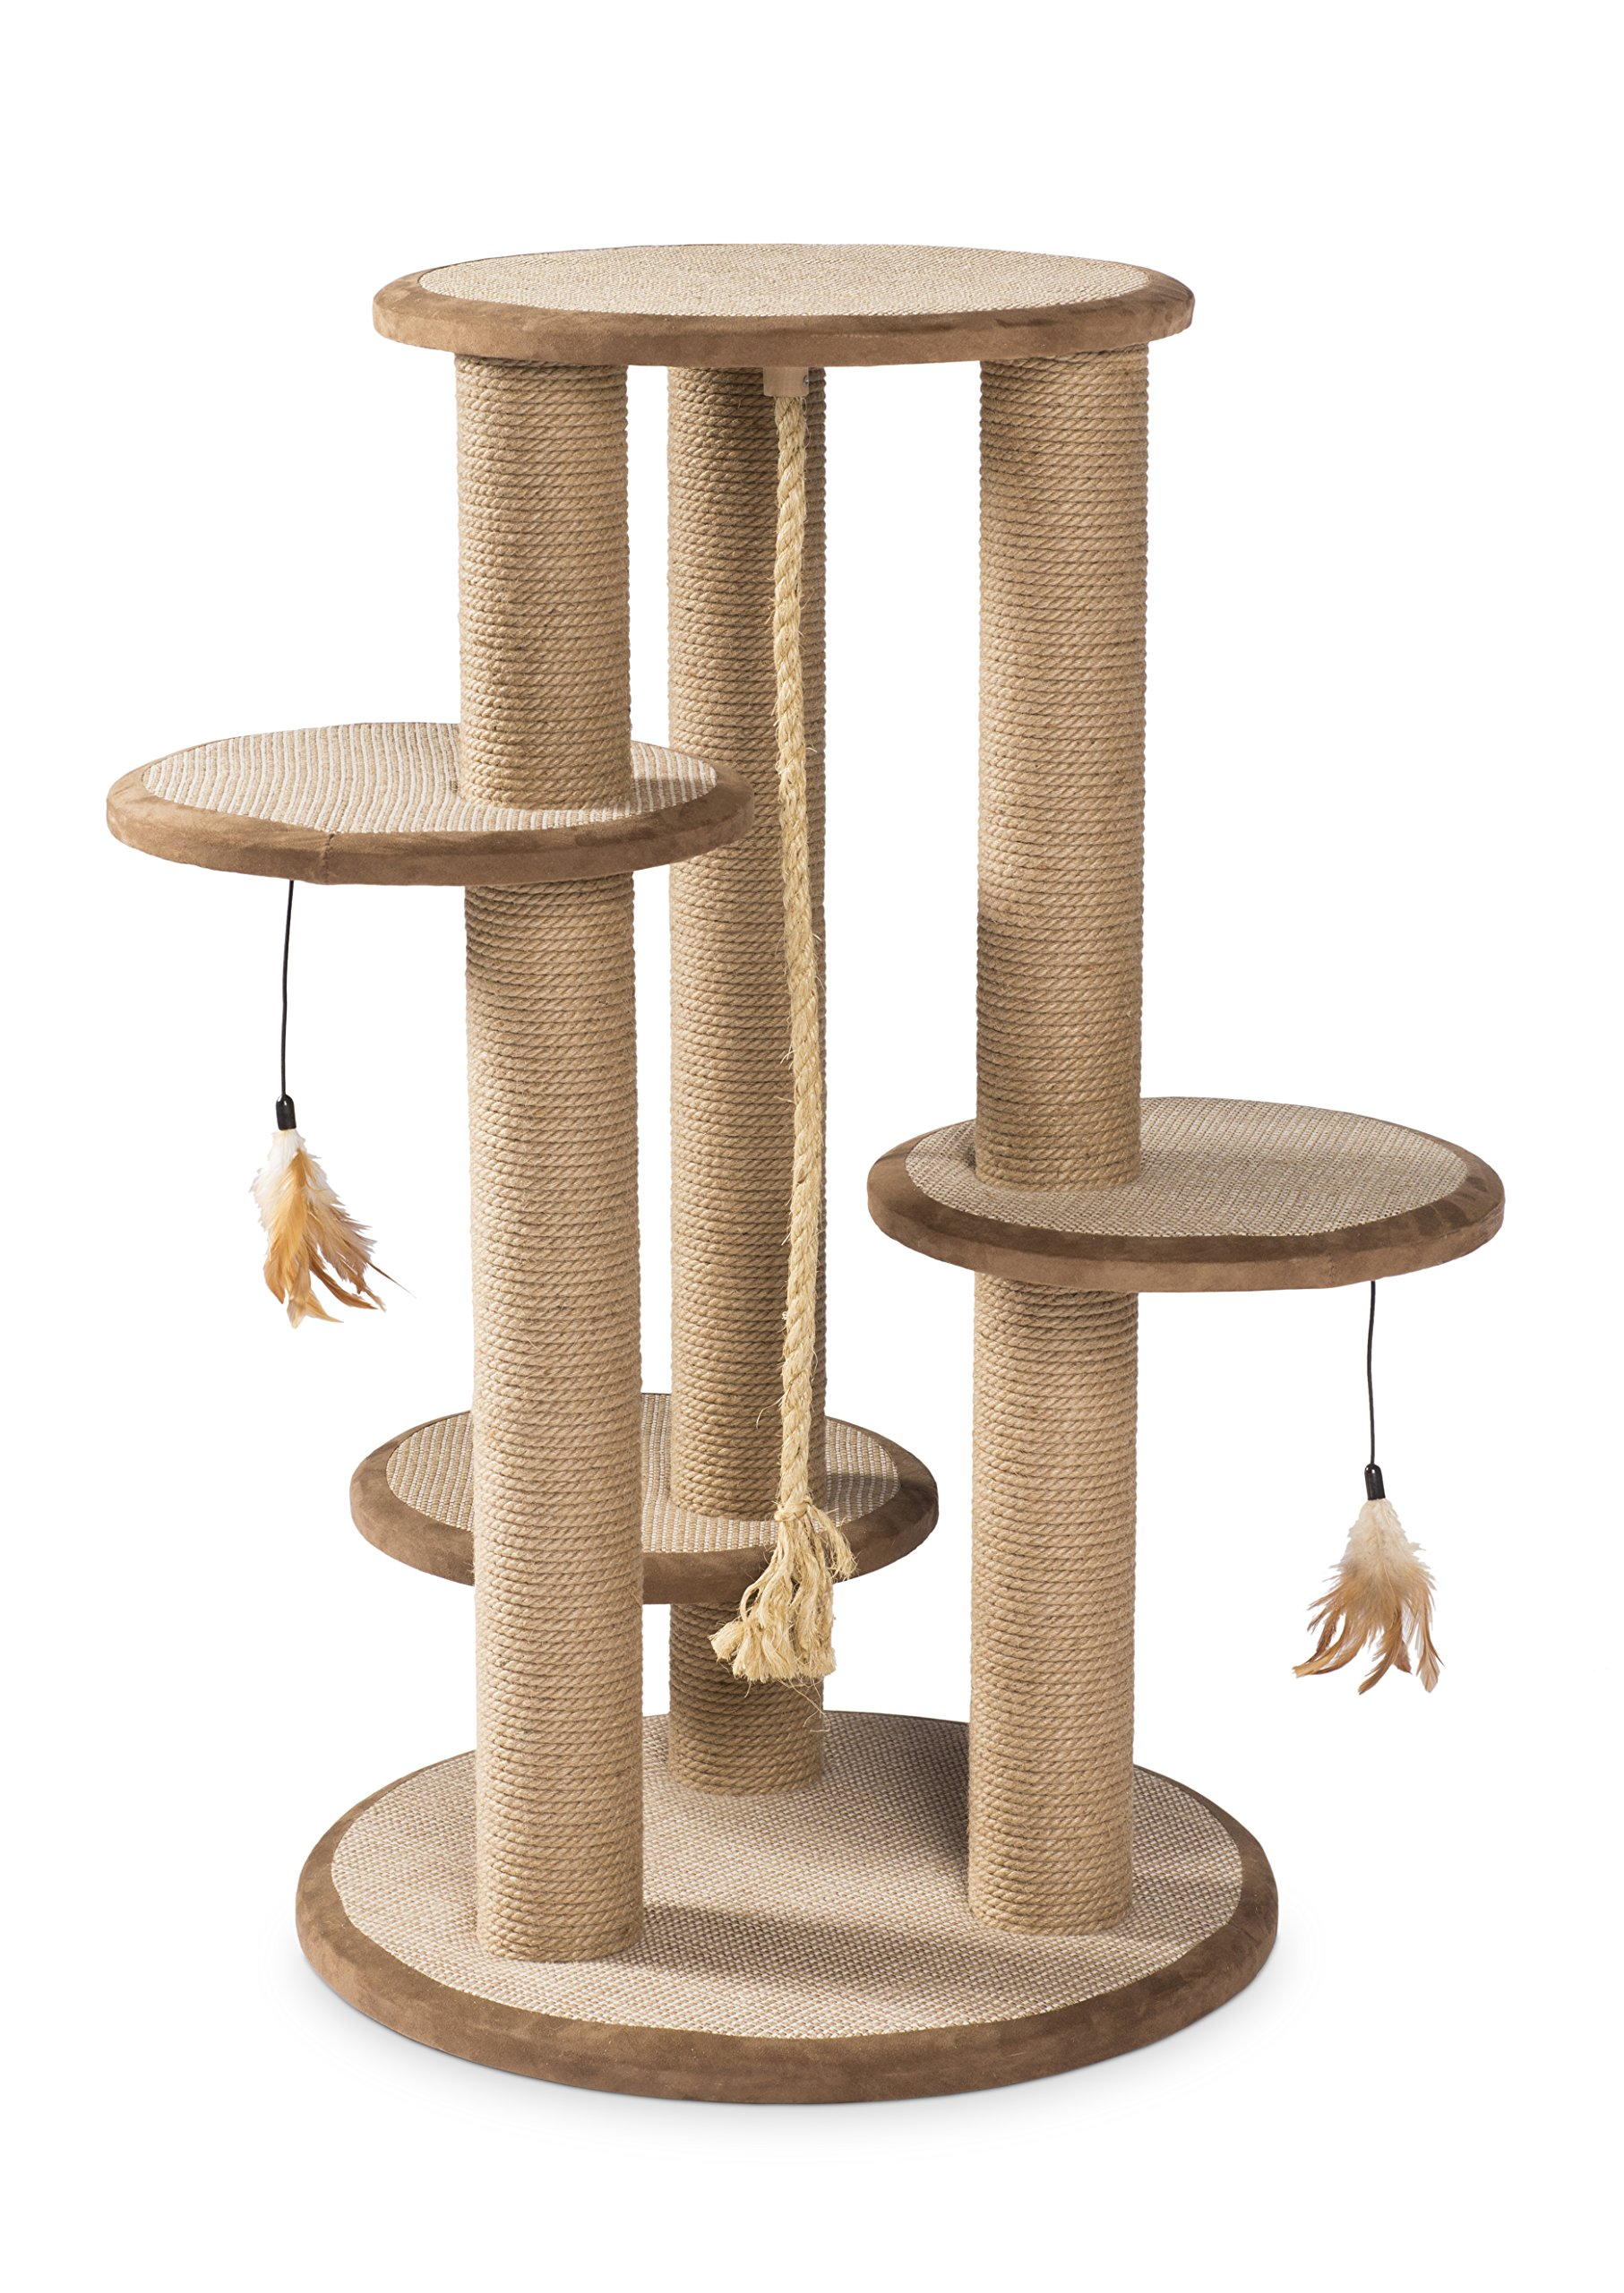 Prevue Pet Products Kitty Power Paws Multi-Platform Posts with Tassel Toys, Natural